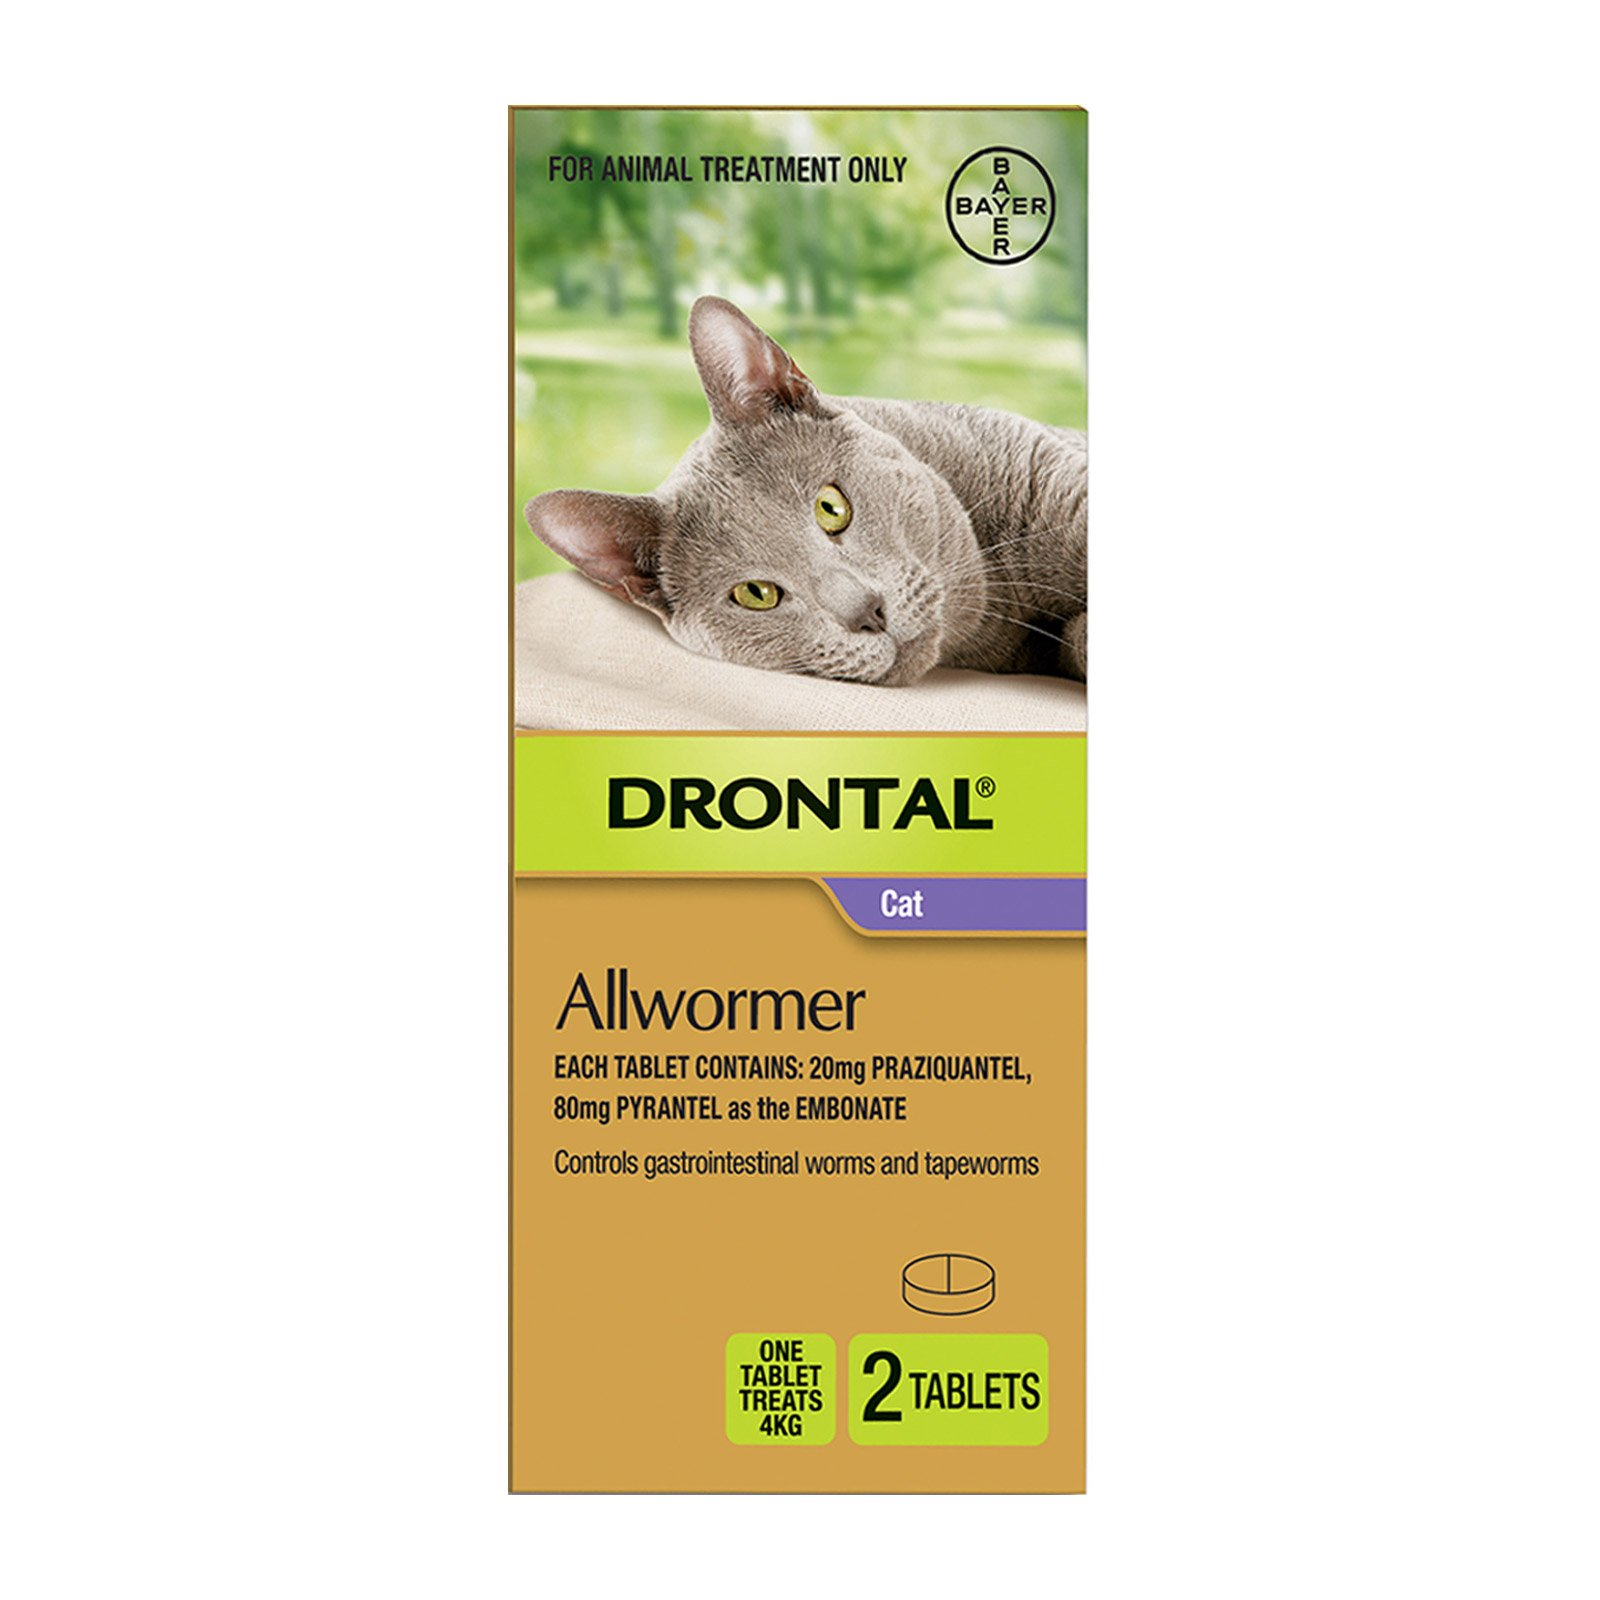 drontal-cat-allwormer-tablets-with-applicator-2-tablets-big.jpg